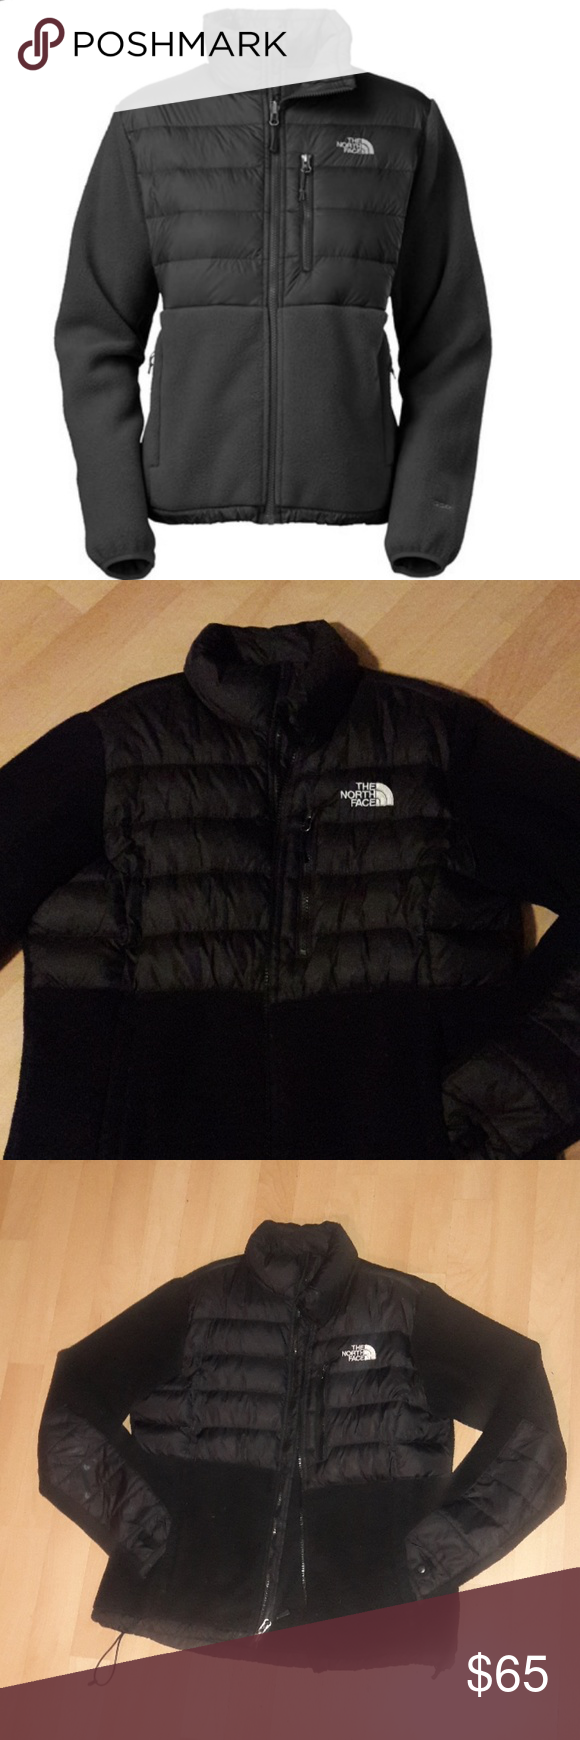 954ac2afa6 The North Face Denali down jacket Great shape North Face Jacket. The jacket  is light weight but surprising warm. Its very stylish and has the extra  detail ...